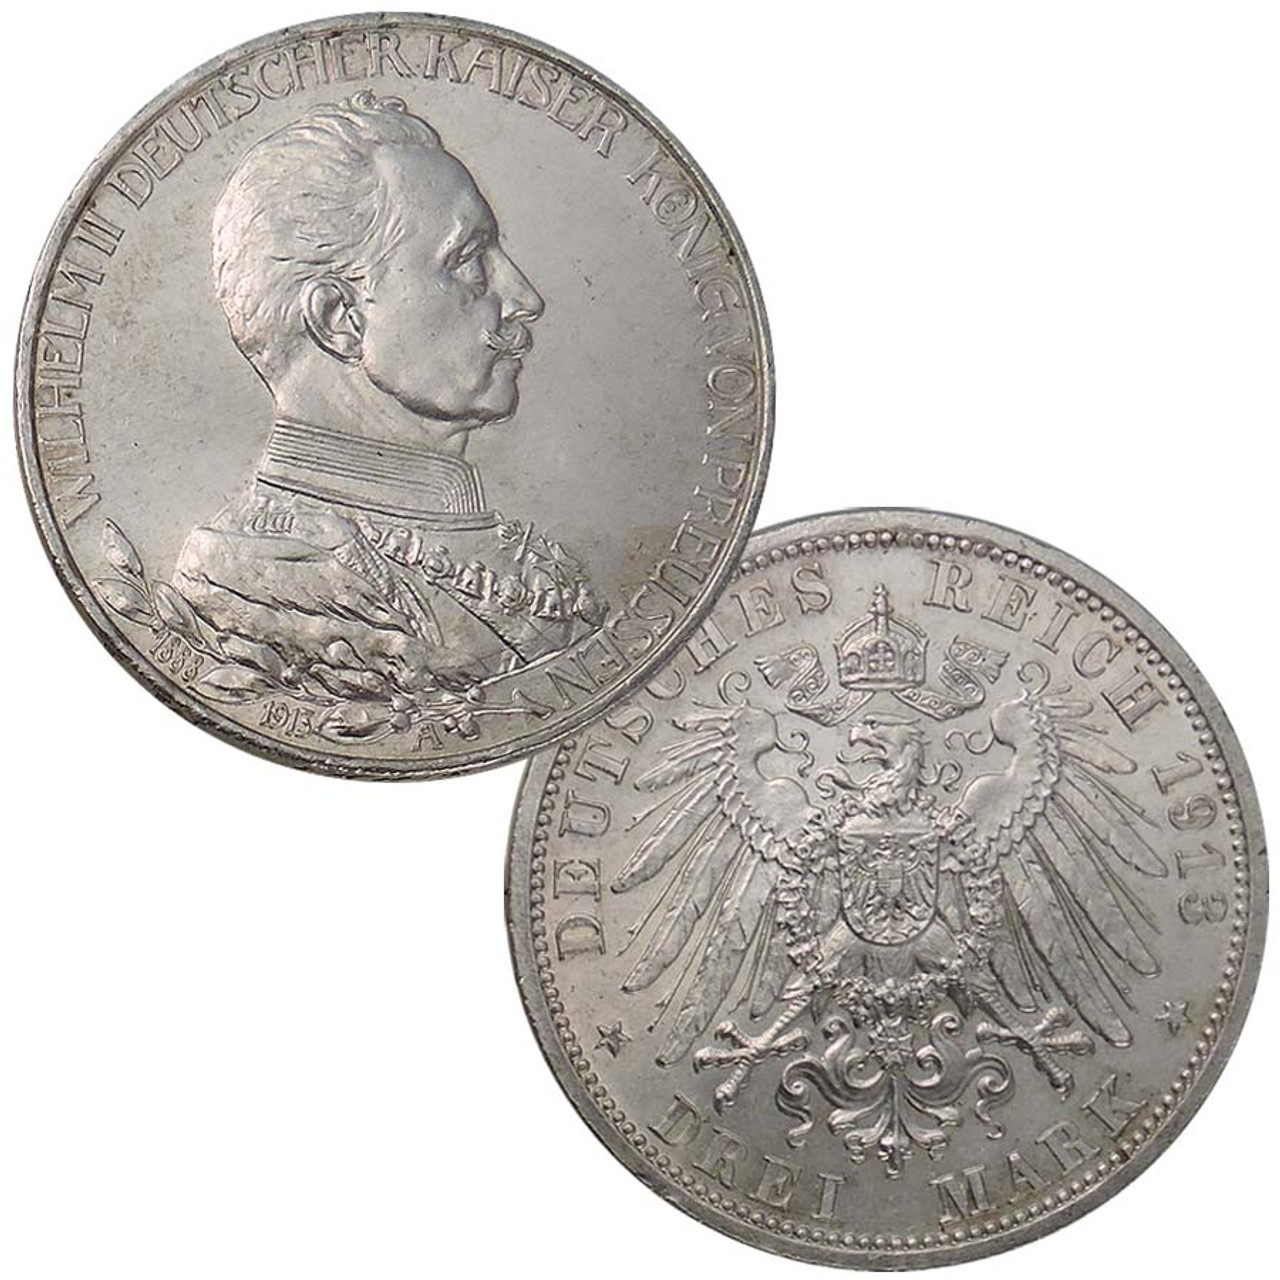 Prussia 1913 or 1914 Silver Jubilee of Wilhelm II 3 Mark Extra Fine to About Uncirculated Image 1